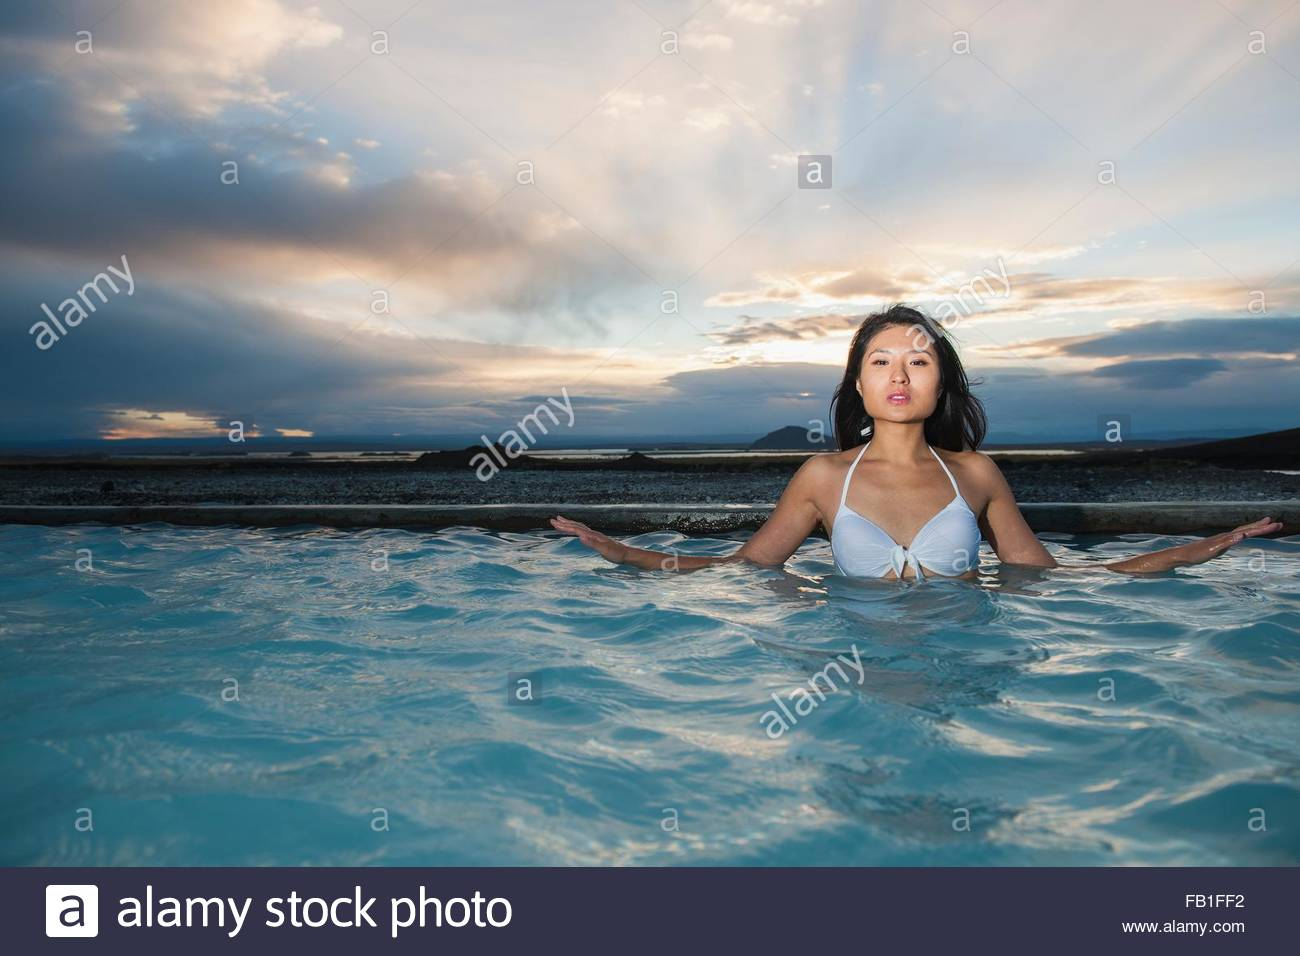 Woman enjoying the warm water, in geothermal bath, North Iceland - Stock Image